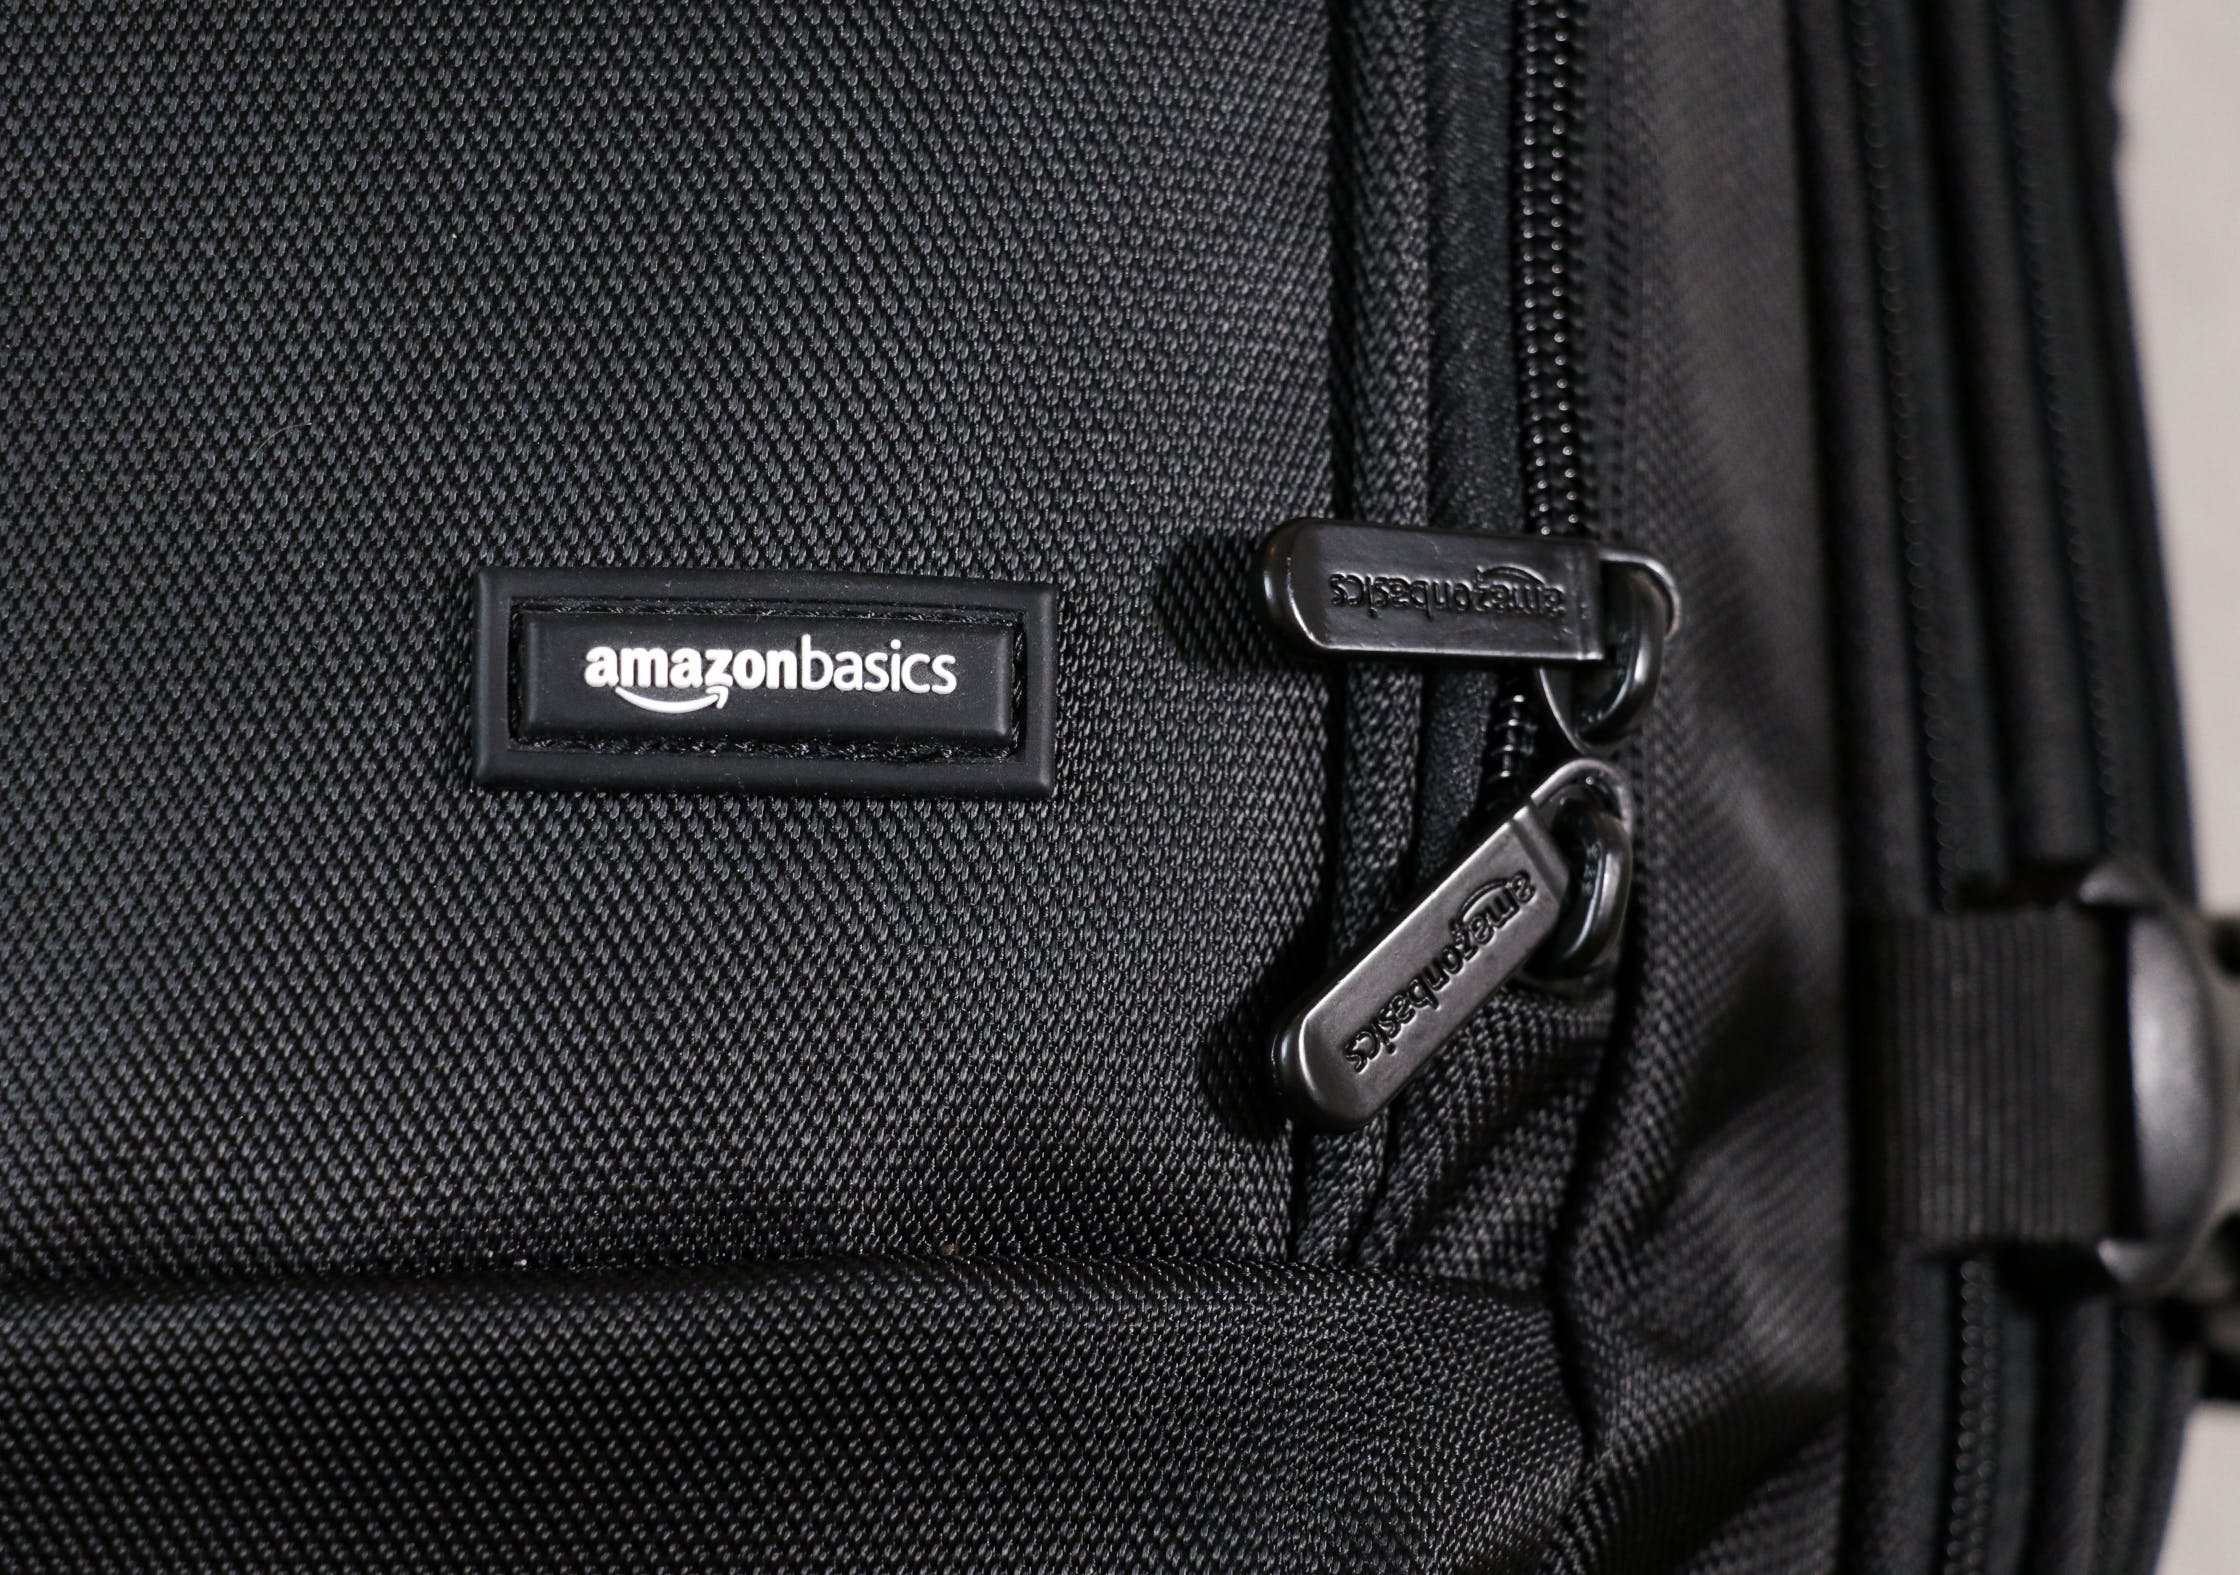 AmazonBasics Carry-On Travel Backpack Branding 76f7ea735c333